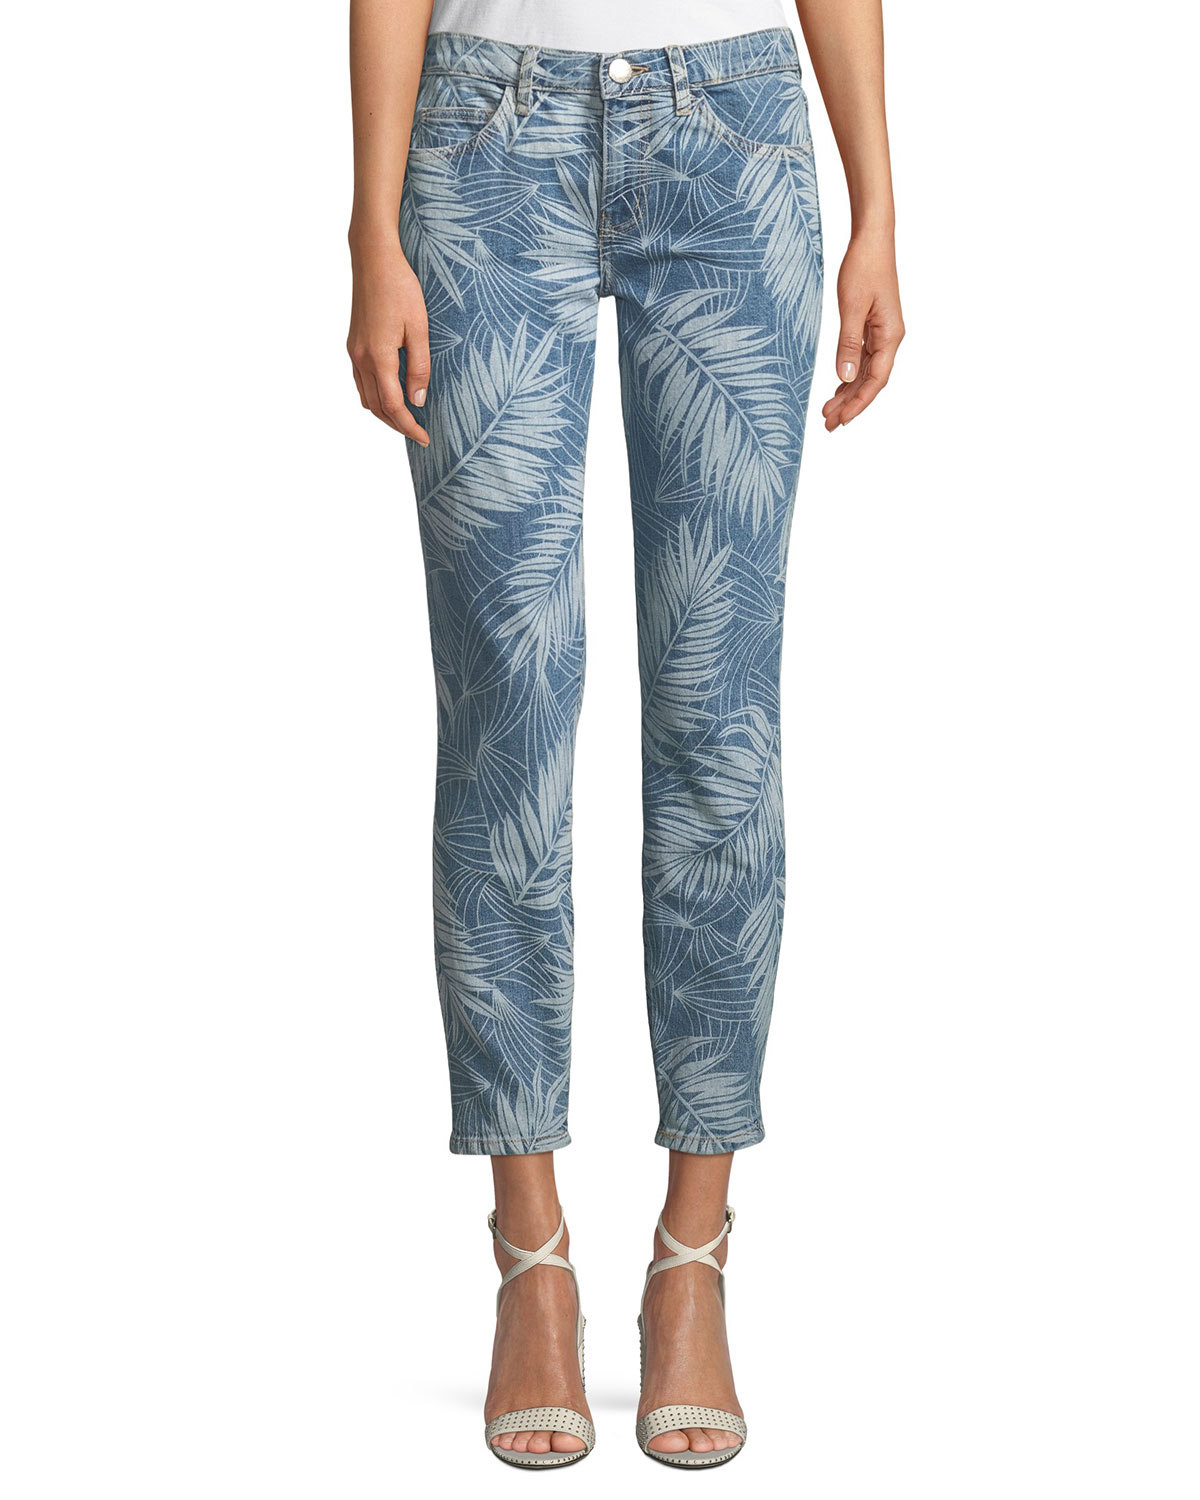 The Stiletto Palm-Print Skinny Jeans